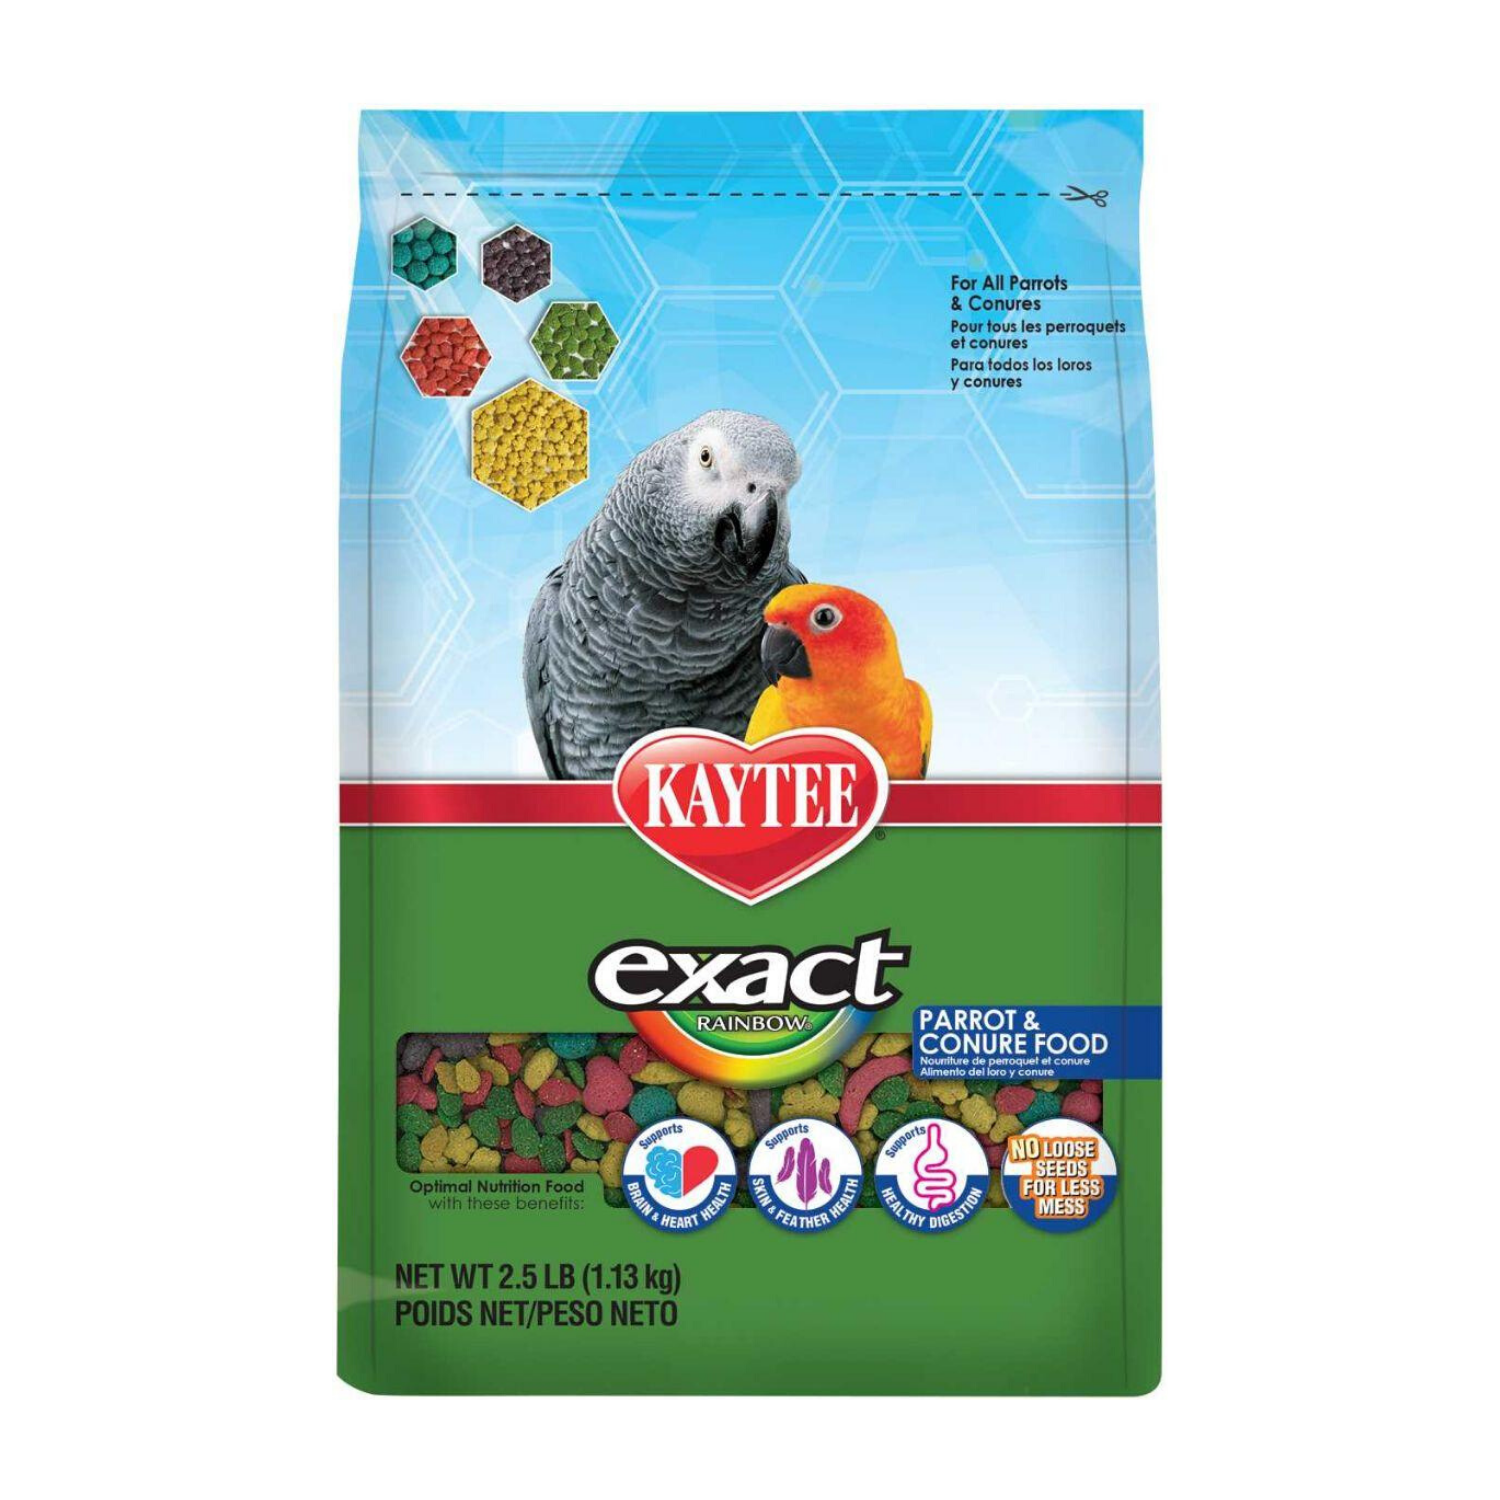 Kaytee exact Rainbow Parrot and Conure Food - 1.13kg / 1.81kg